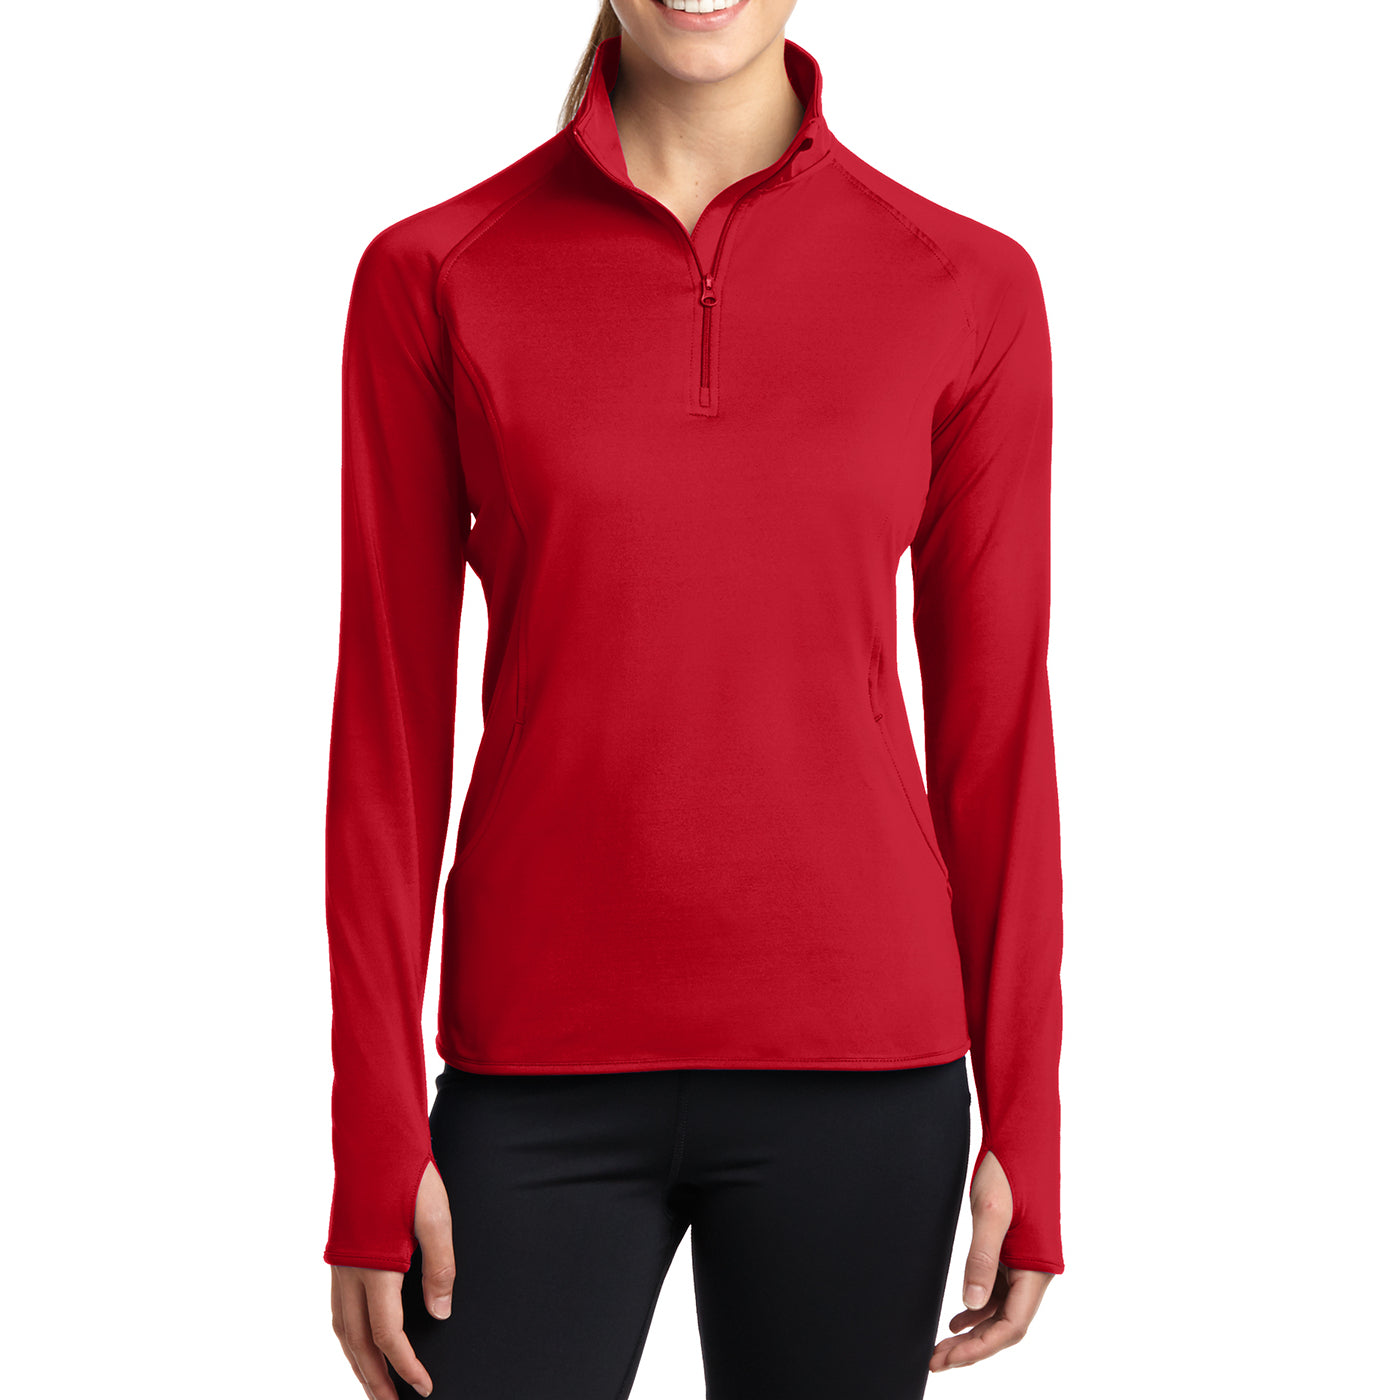 Women's Sport Wick Stretch 1/2 Zip Pullover - True Red - Front